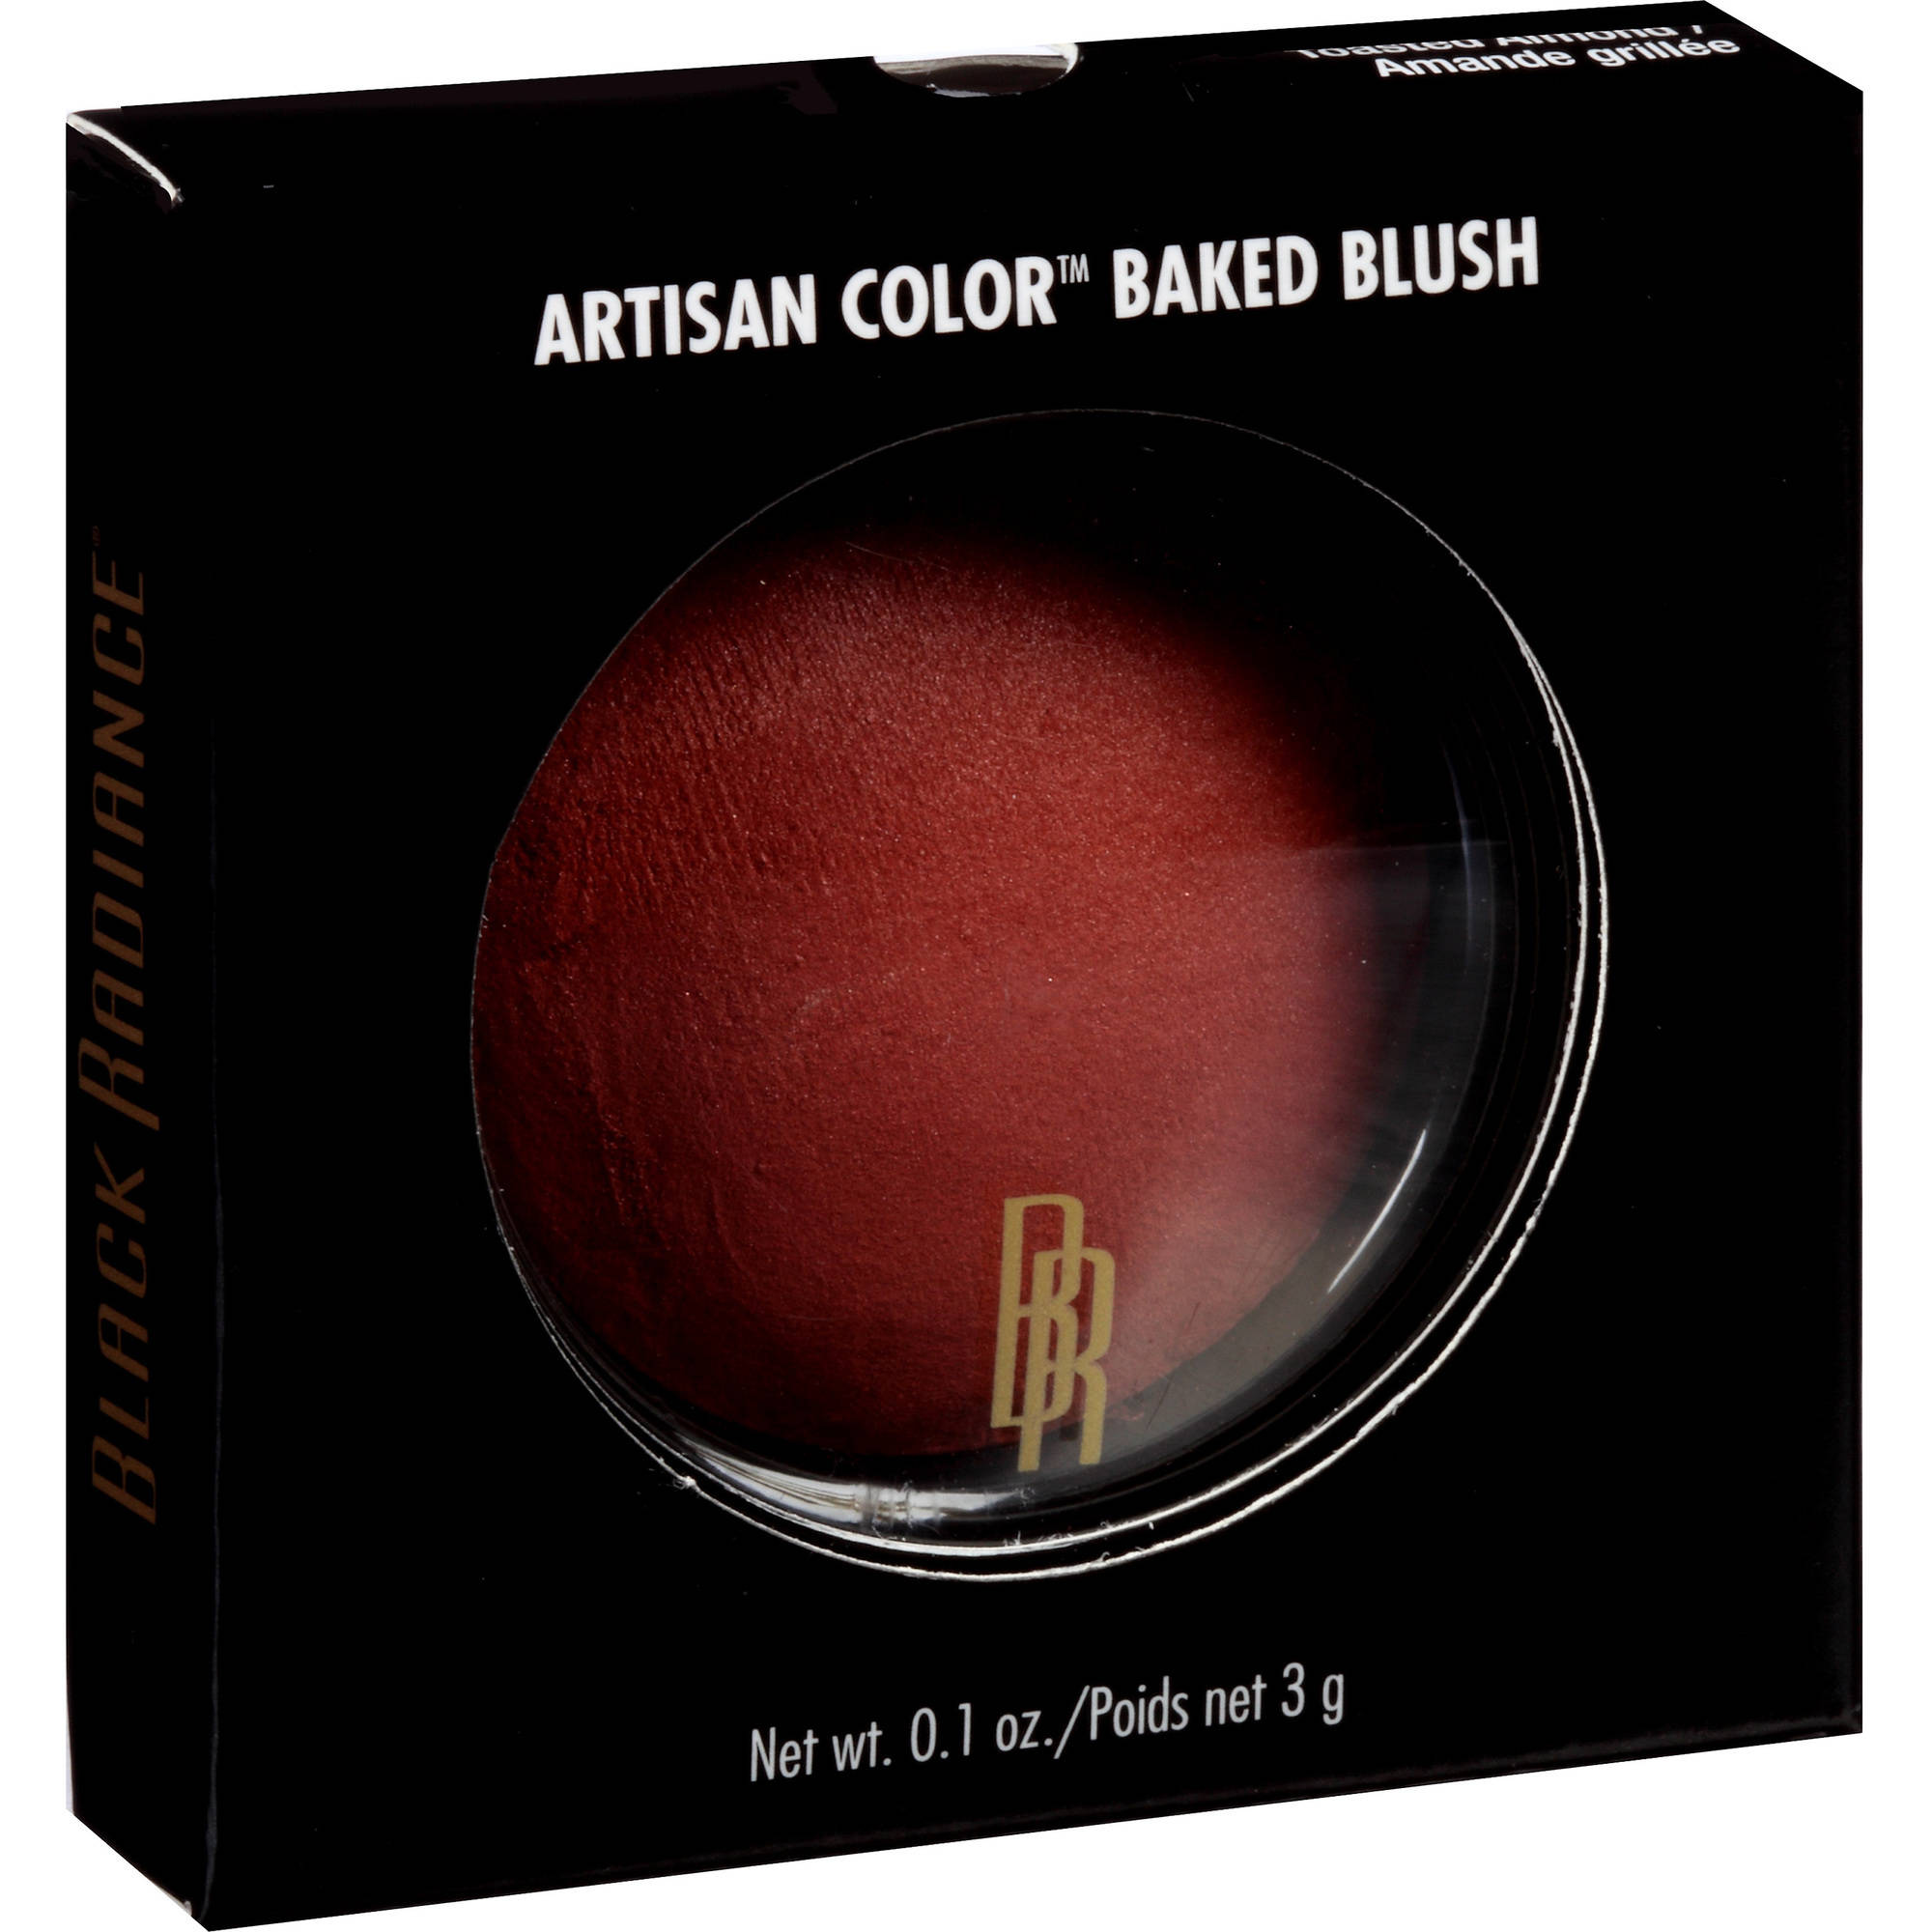 Black Radiance Artisan Color Baked Blush, Toasted Almond 8306, 0.1 oz